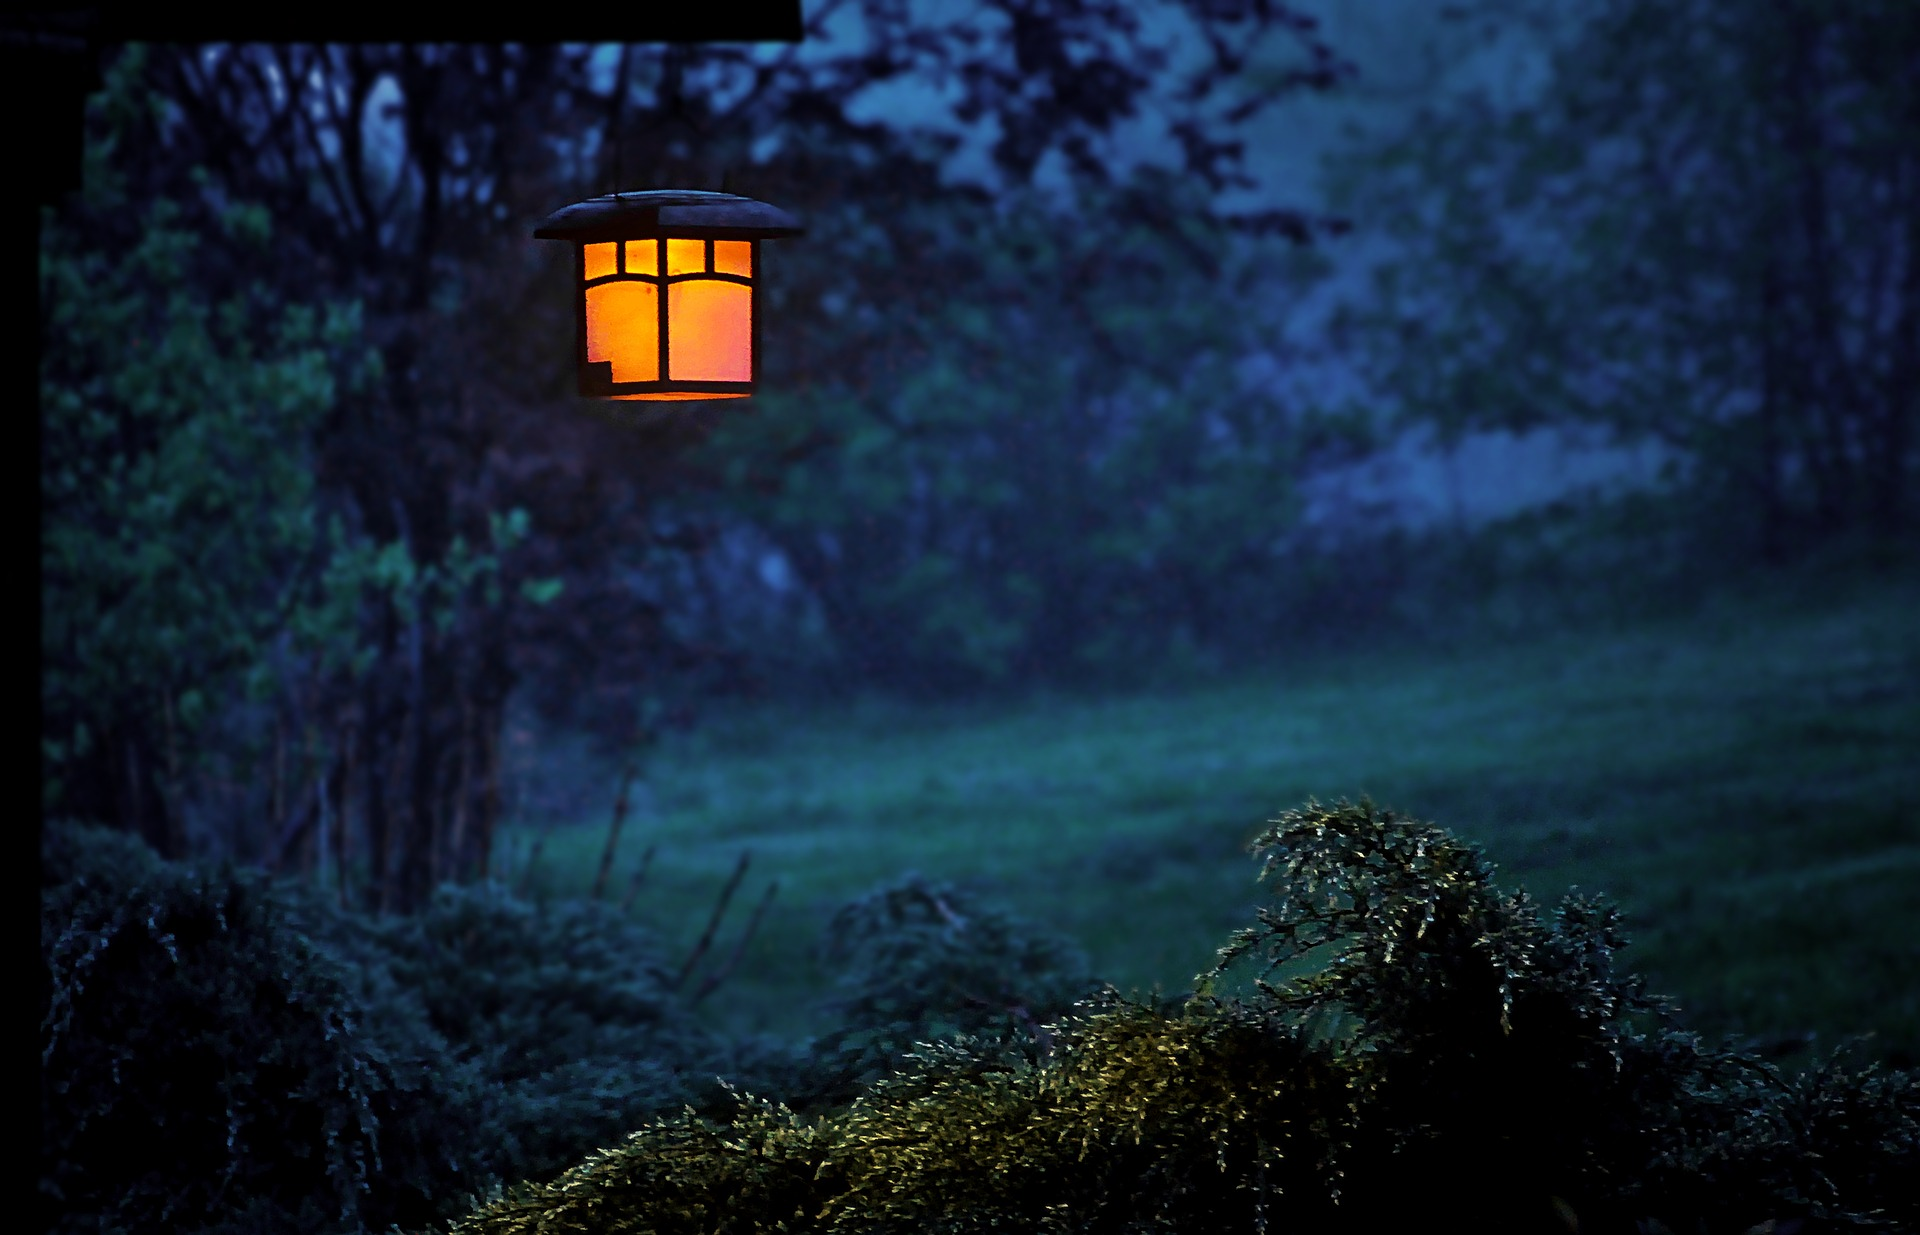 Landscape Lighting: Let There Be Light